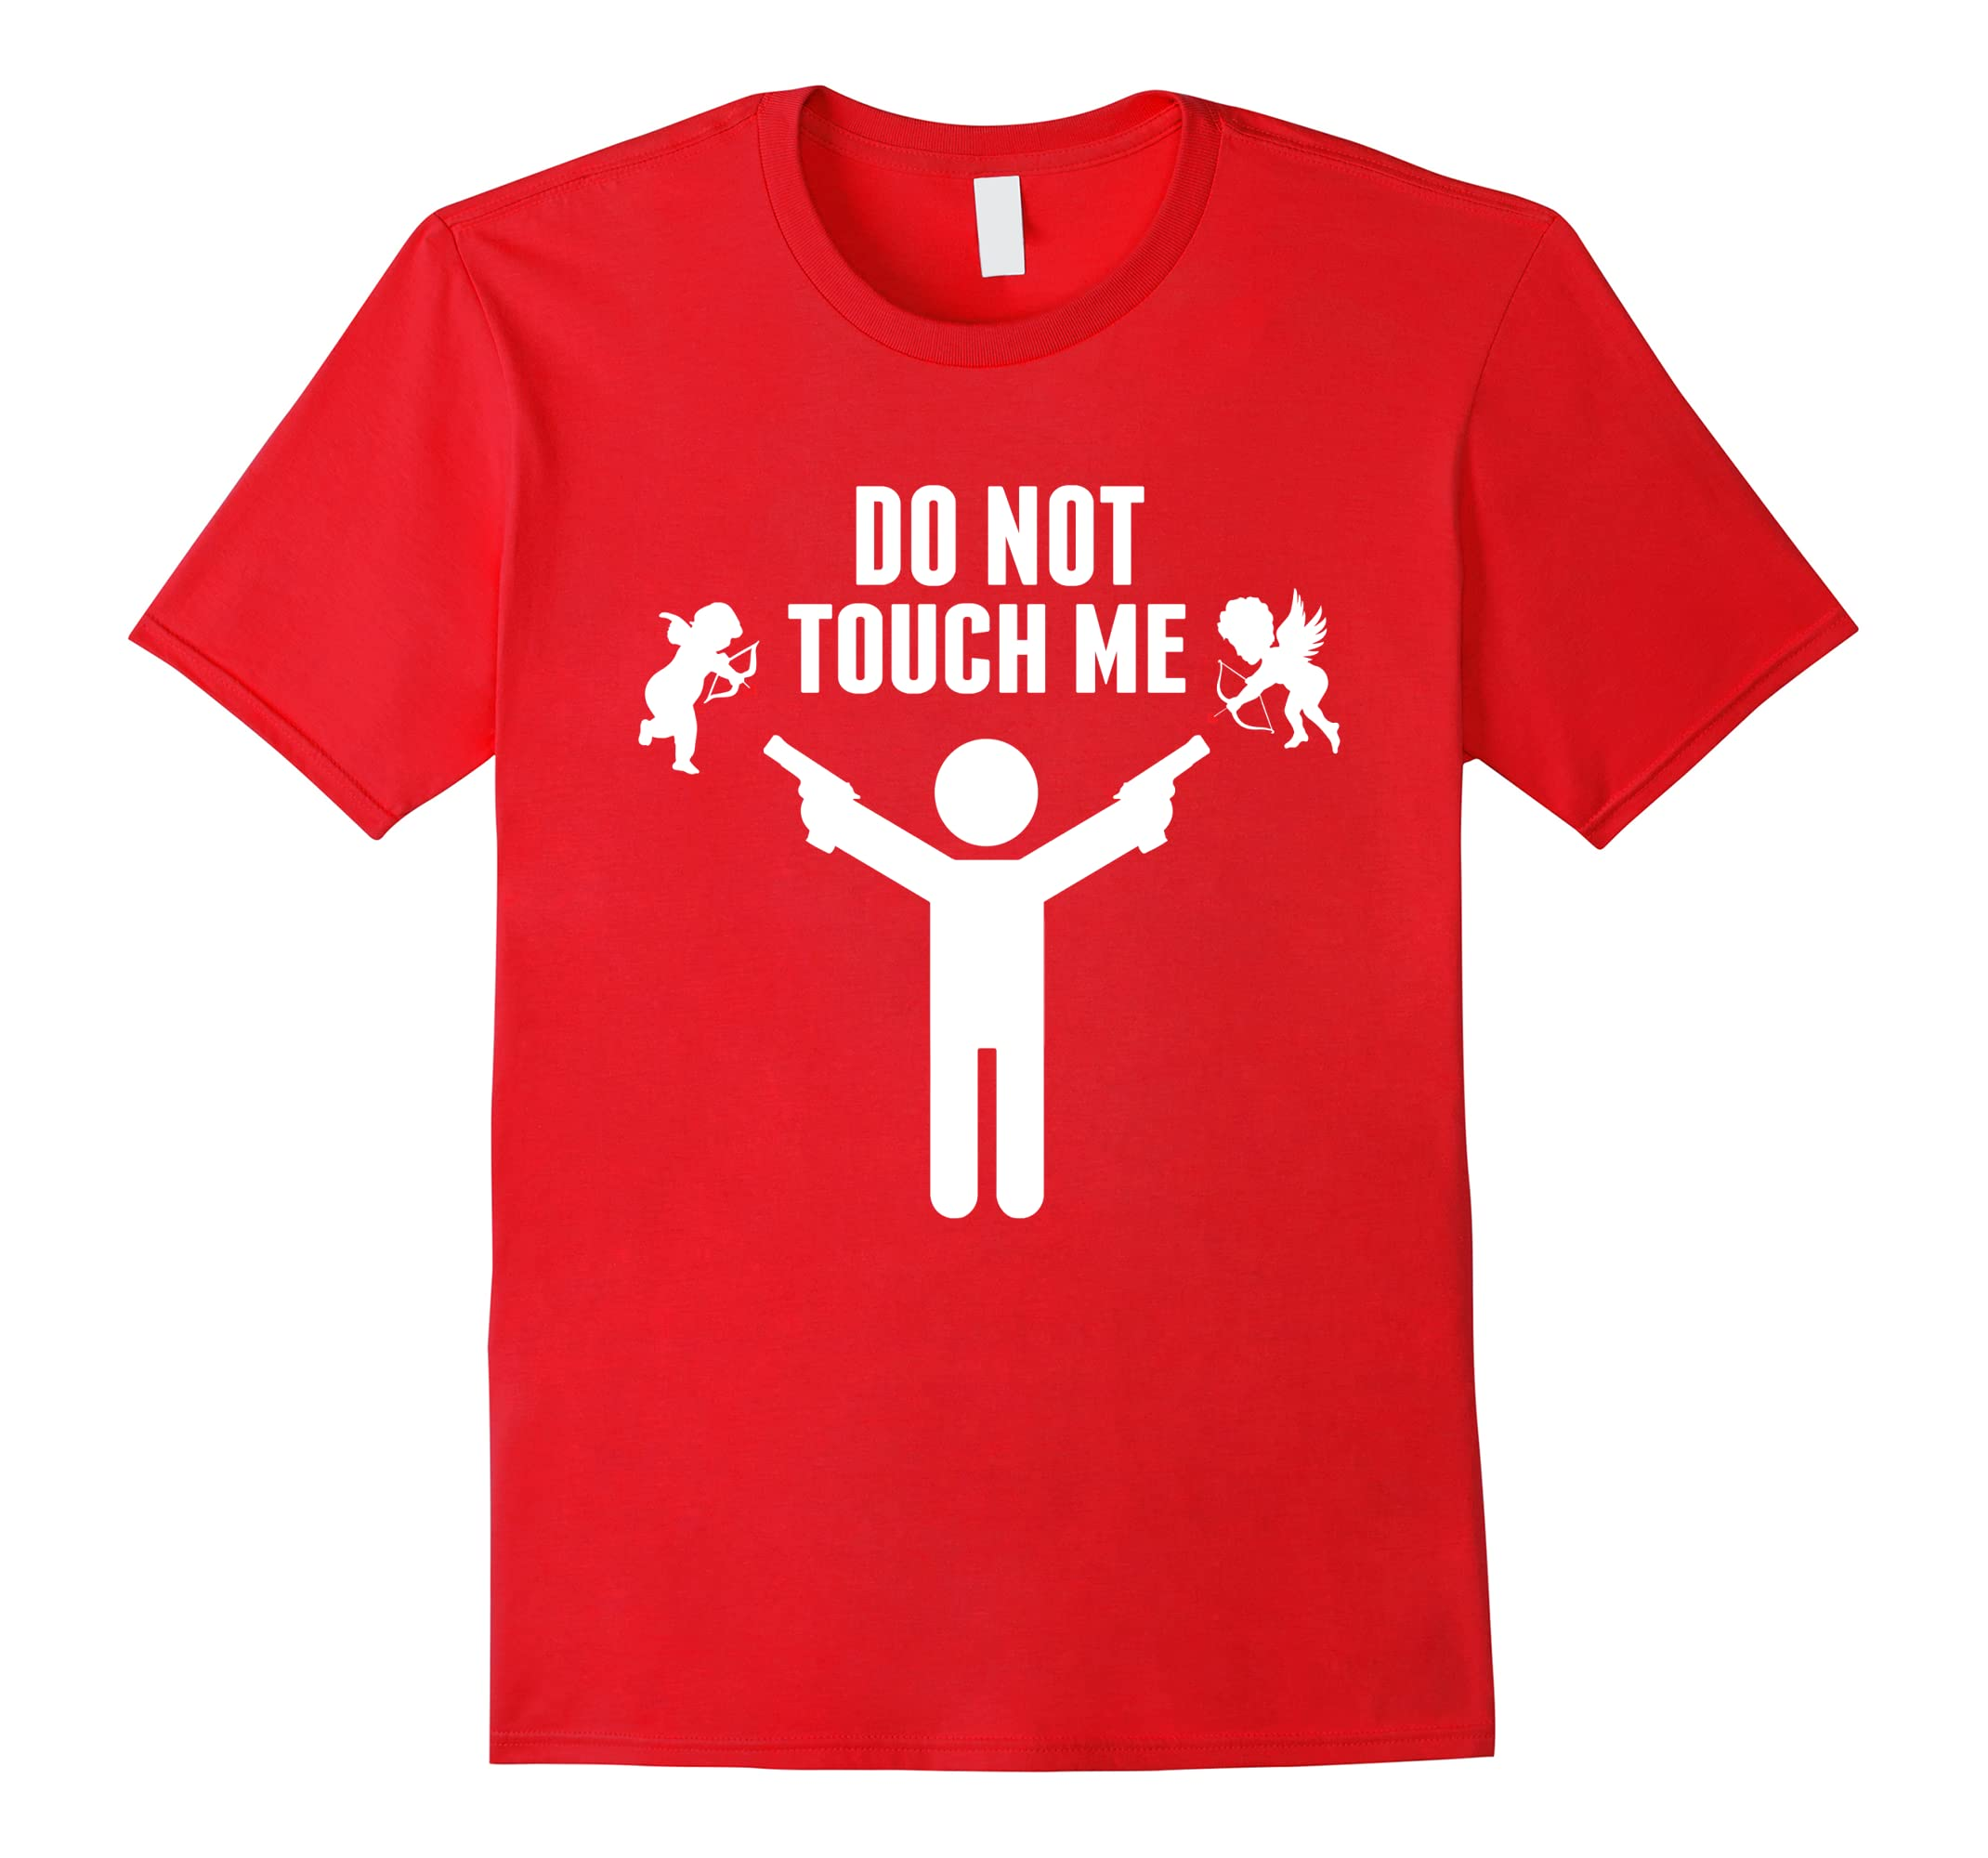 Do Not Touch Me Shirt Funny Valentine S Day Gift T Shirt Rt